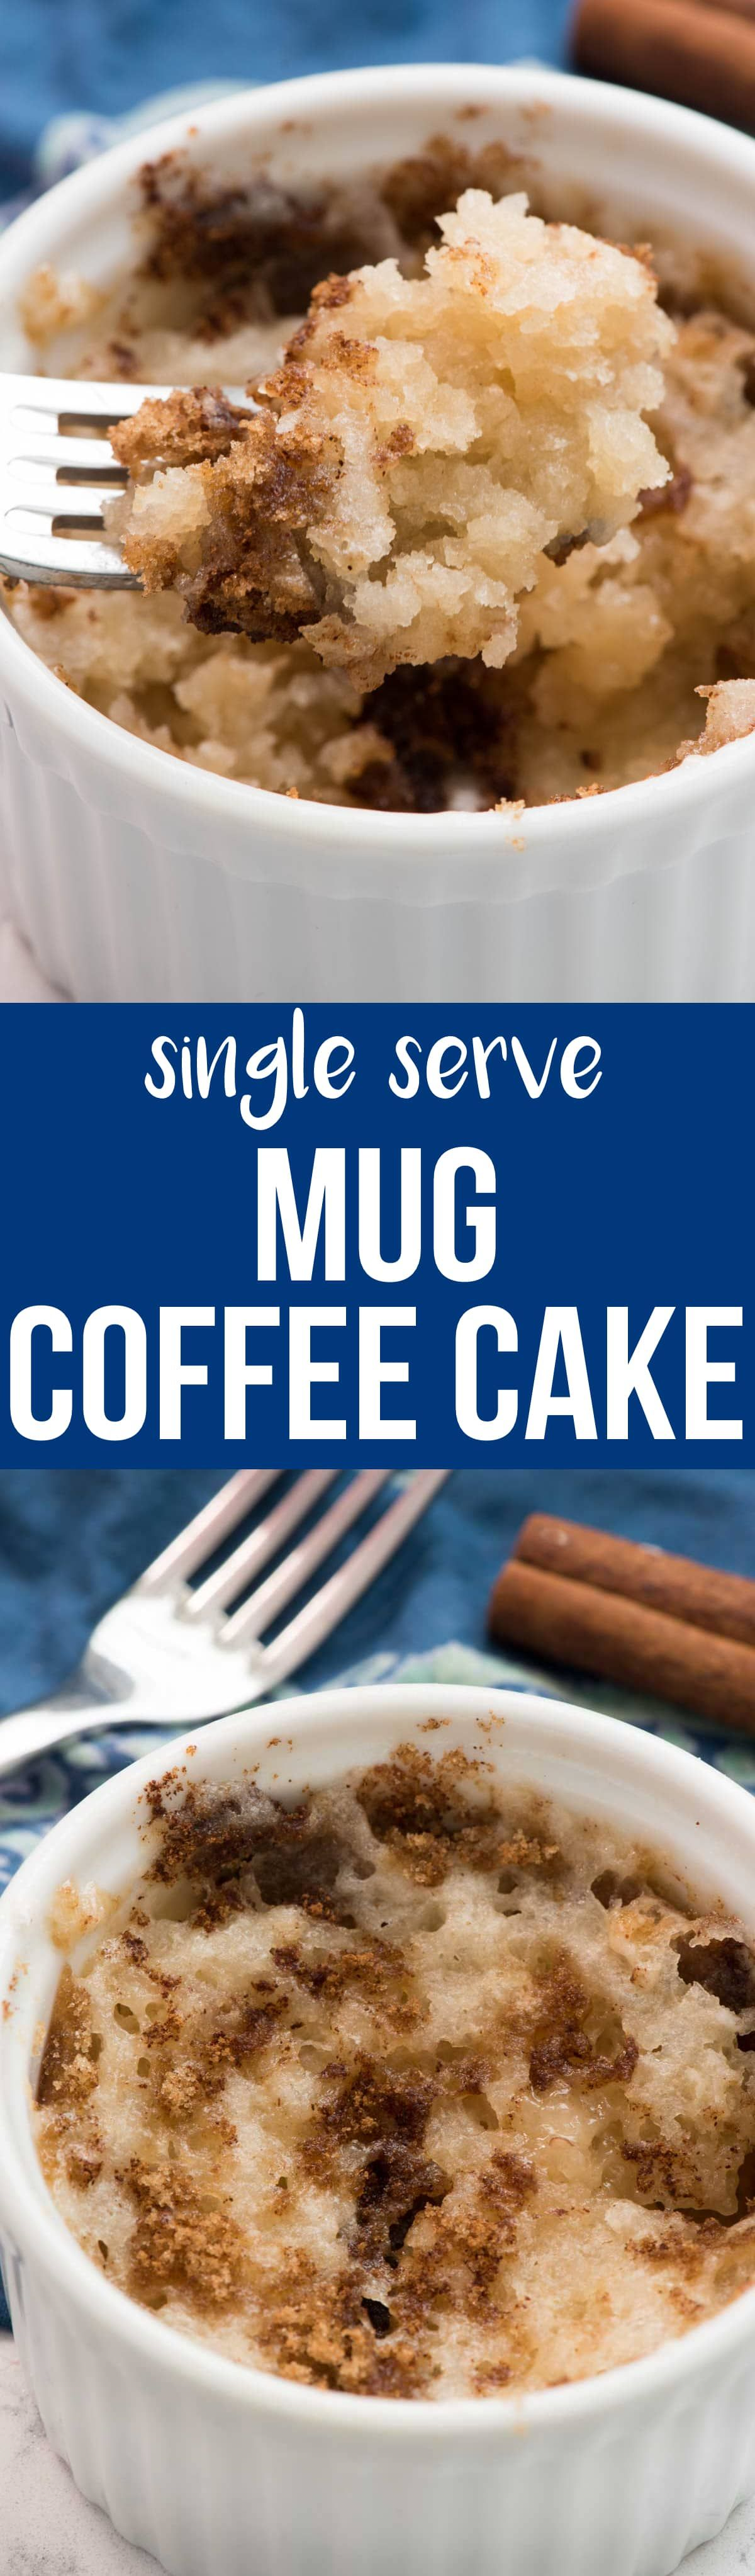 Single Serve Mug Coffee Cake Recipe Mug cake healthy